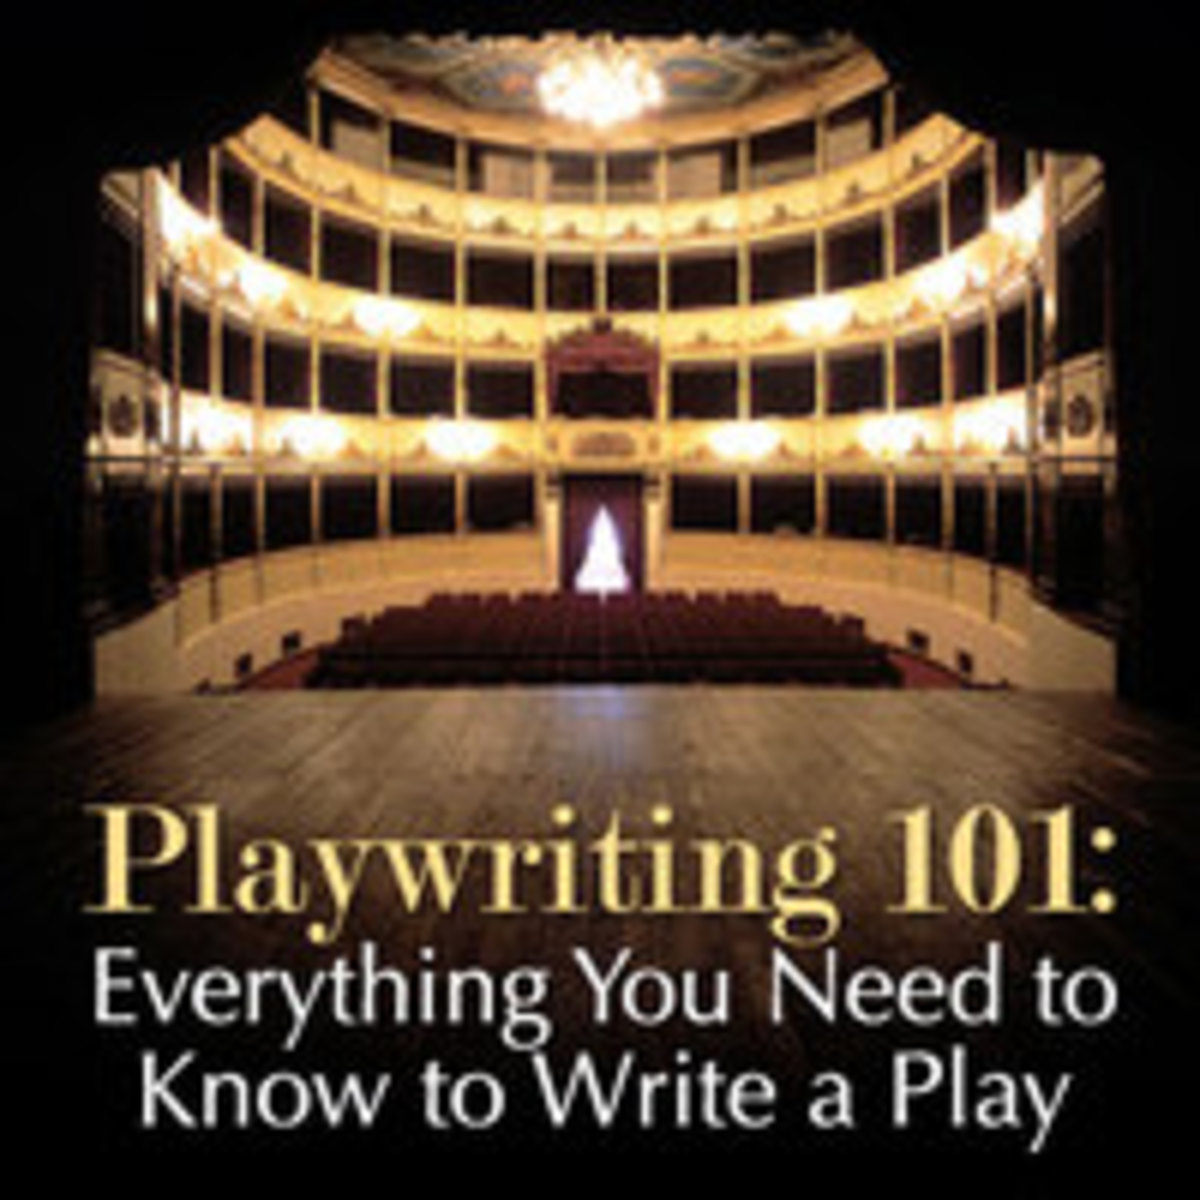 ws_playwriting101-500_small